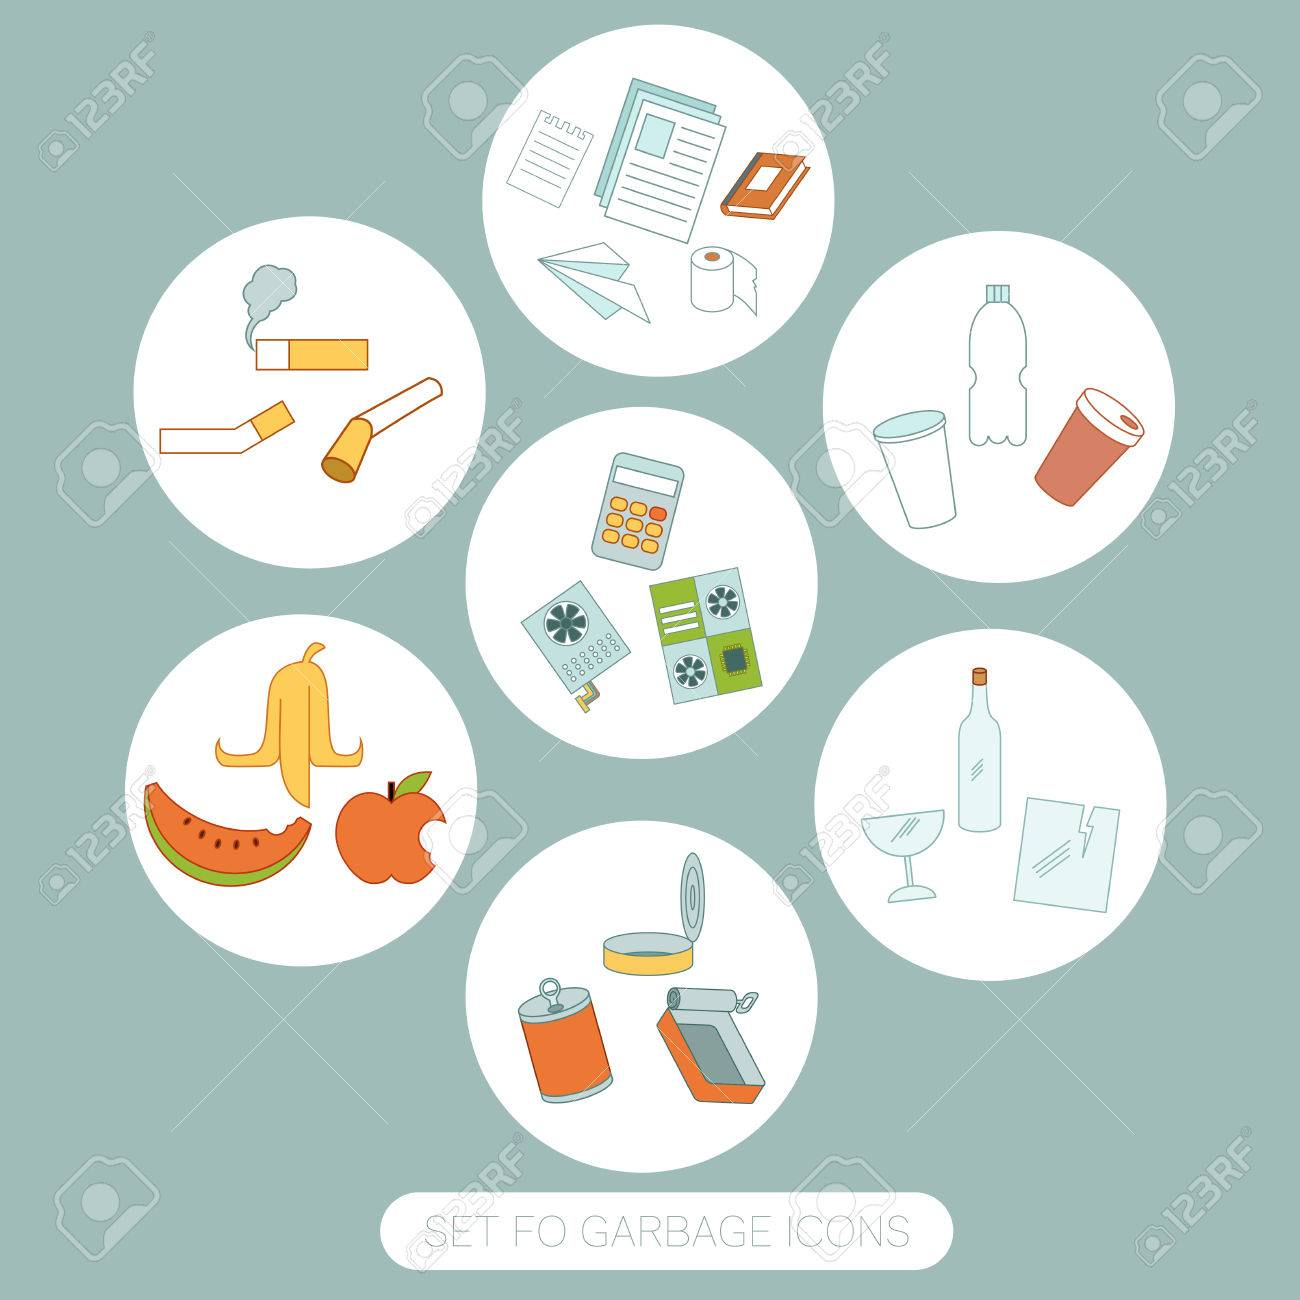 Vector image of the Set of colour garbage sign icons - 63827226